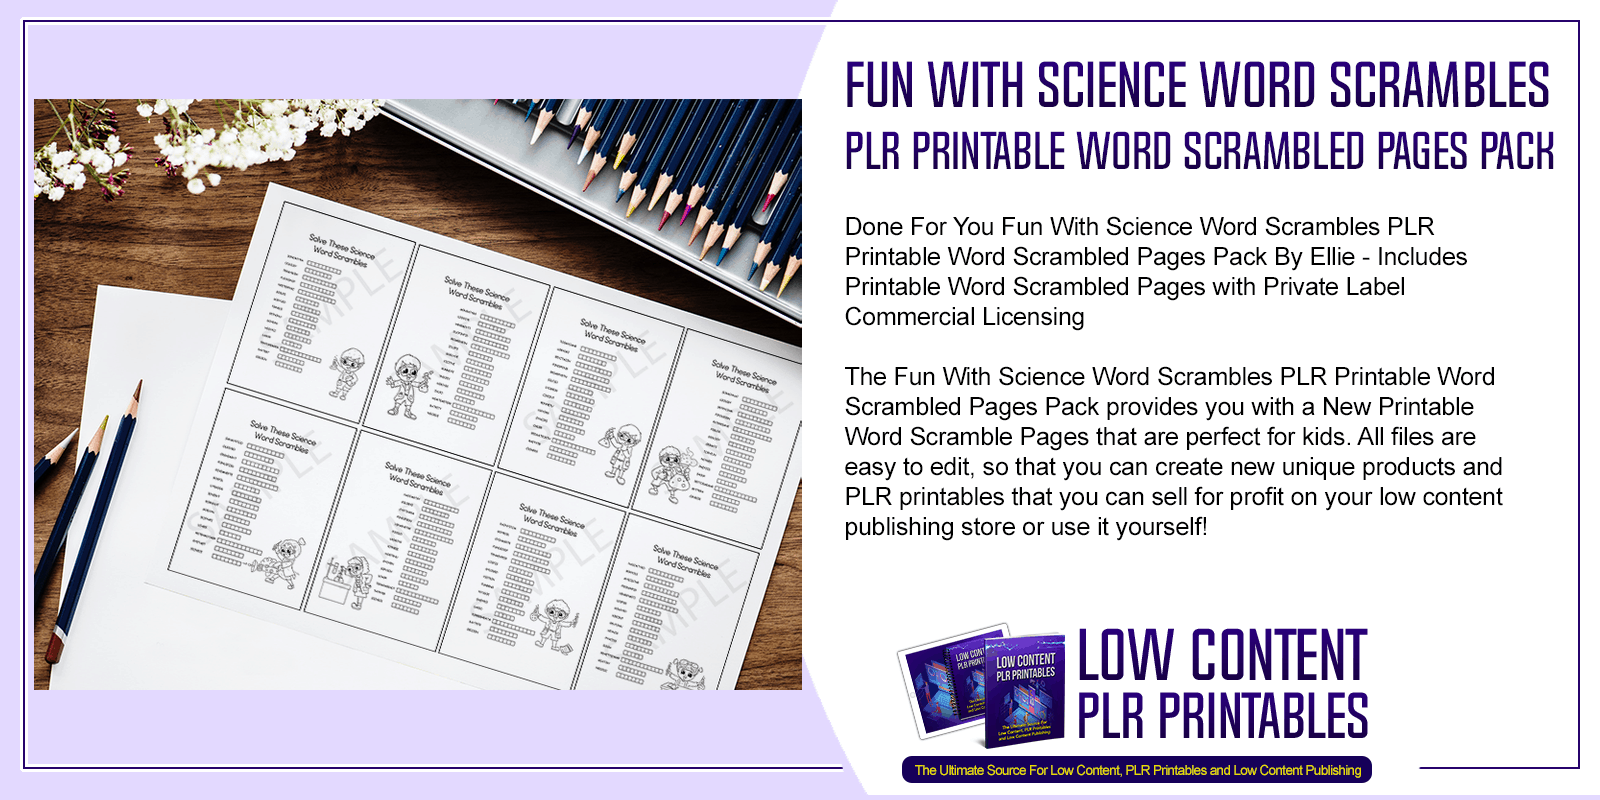 Fun With Science Word Scrambles PLR Printable Word Scrambled Pages Pack